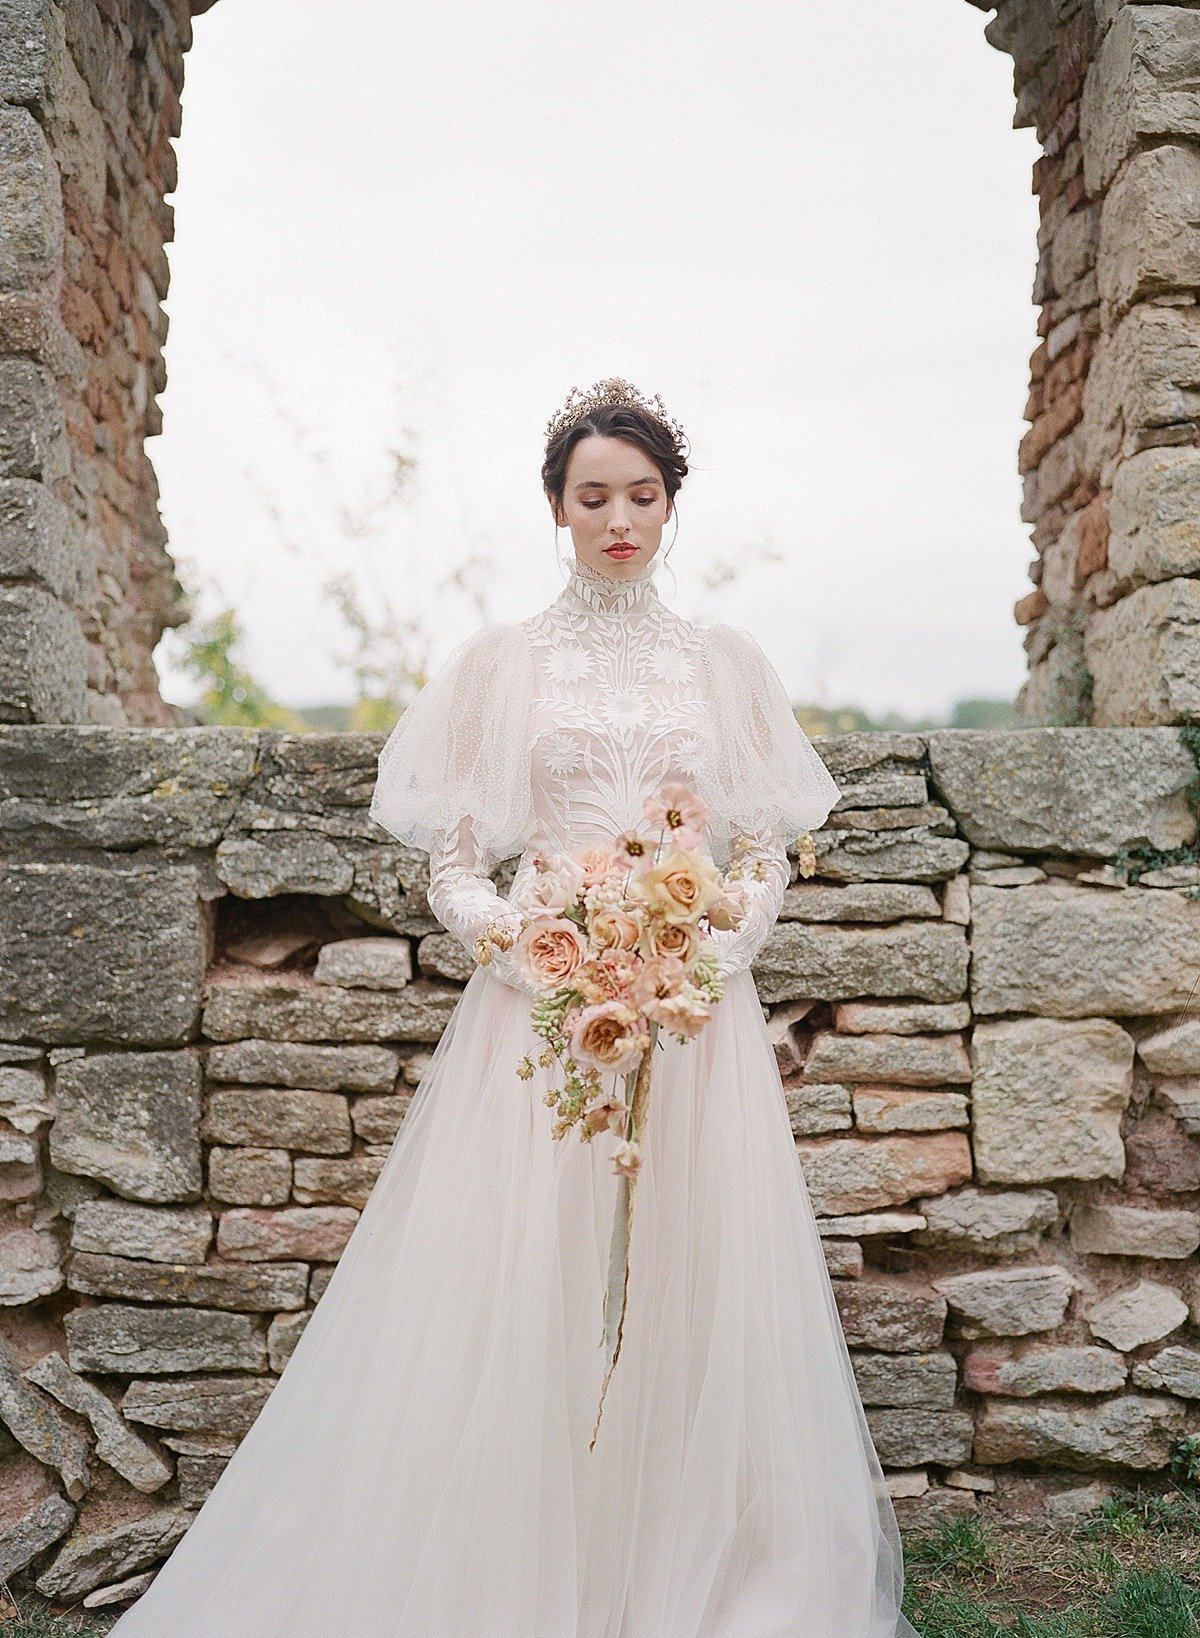 Helianthus-high-neck-puff-sleeve-wedding-dress-JoanneFlemingDesign-CelineChhuonPhoto (75)_WEB